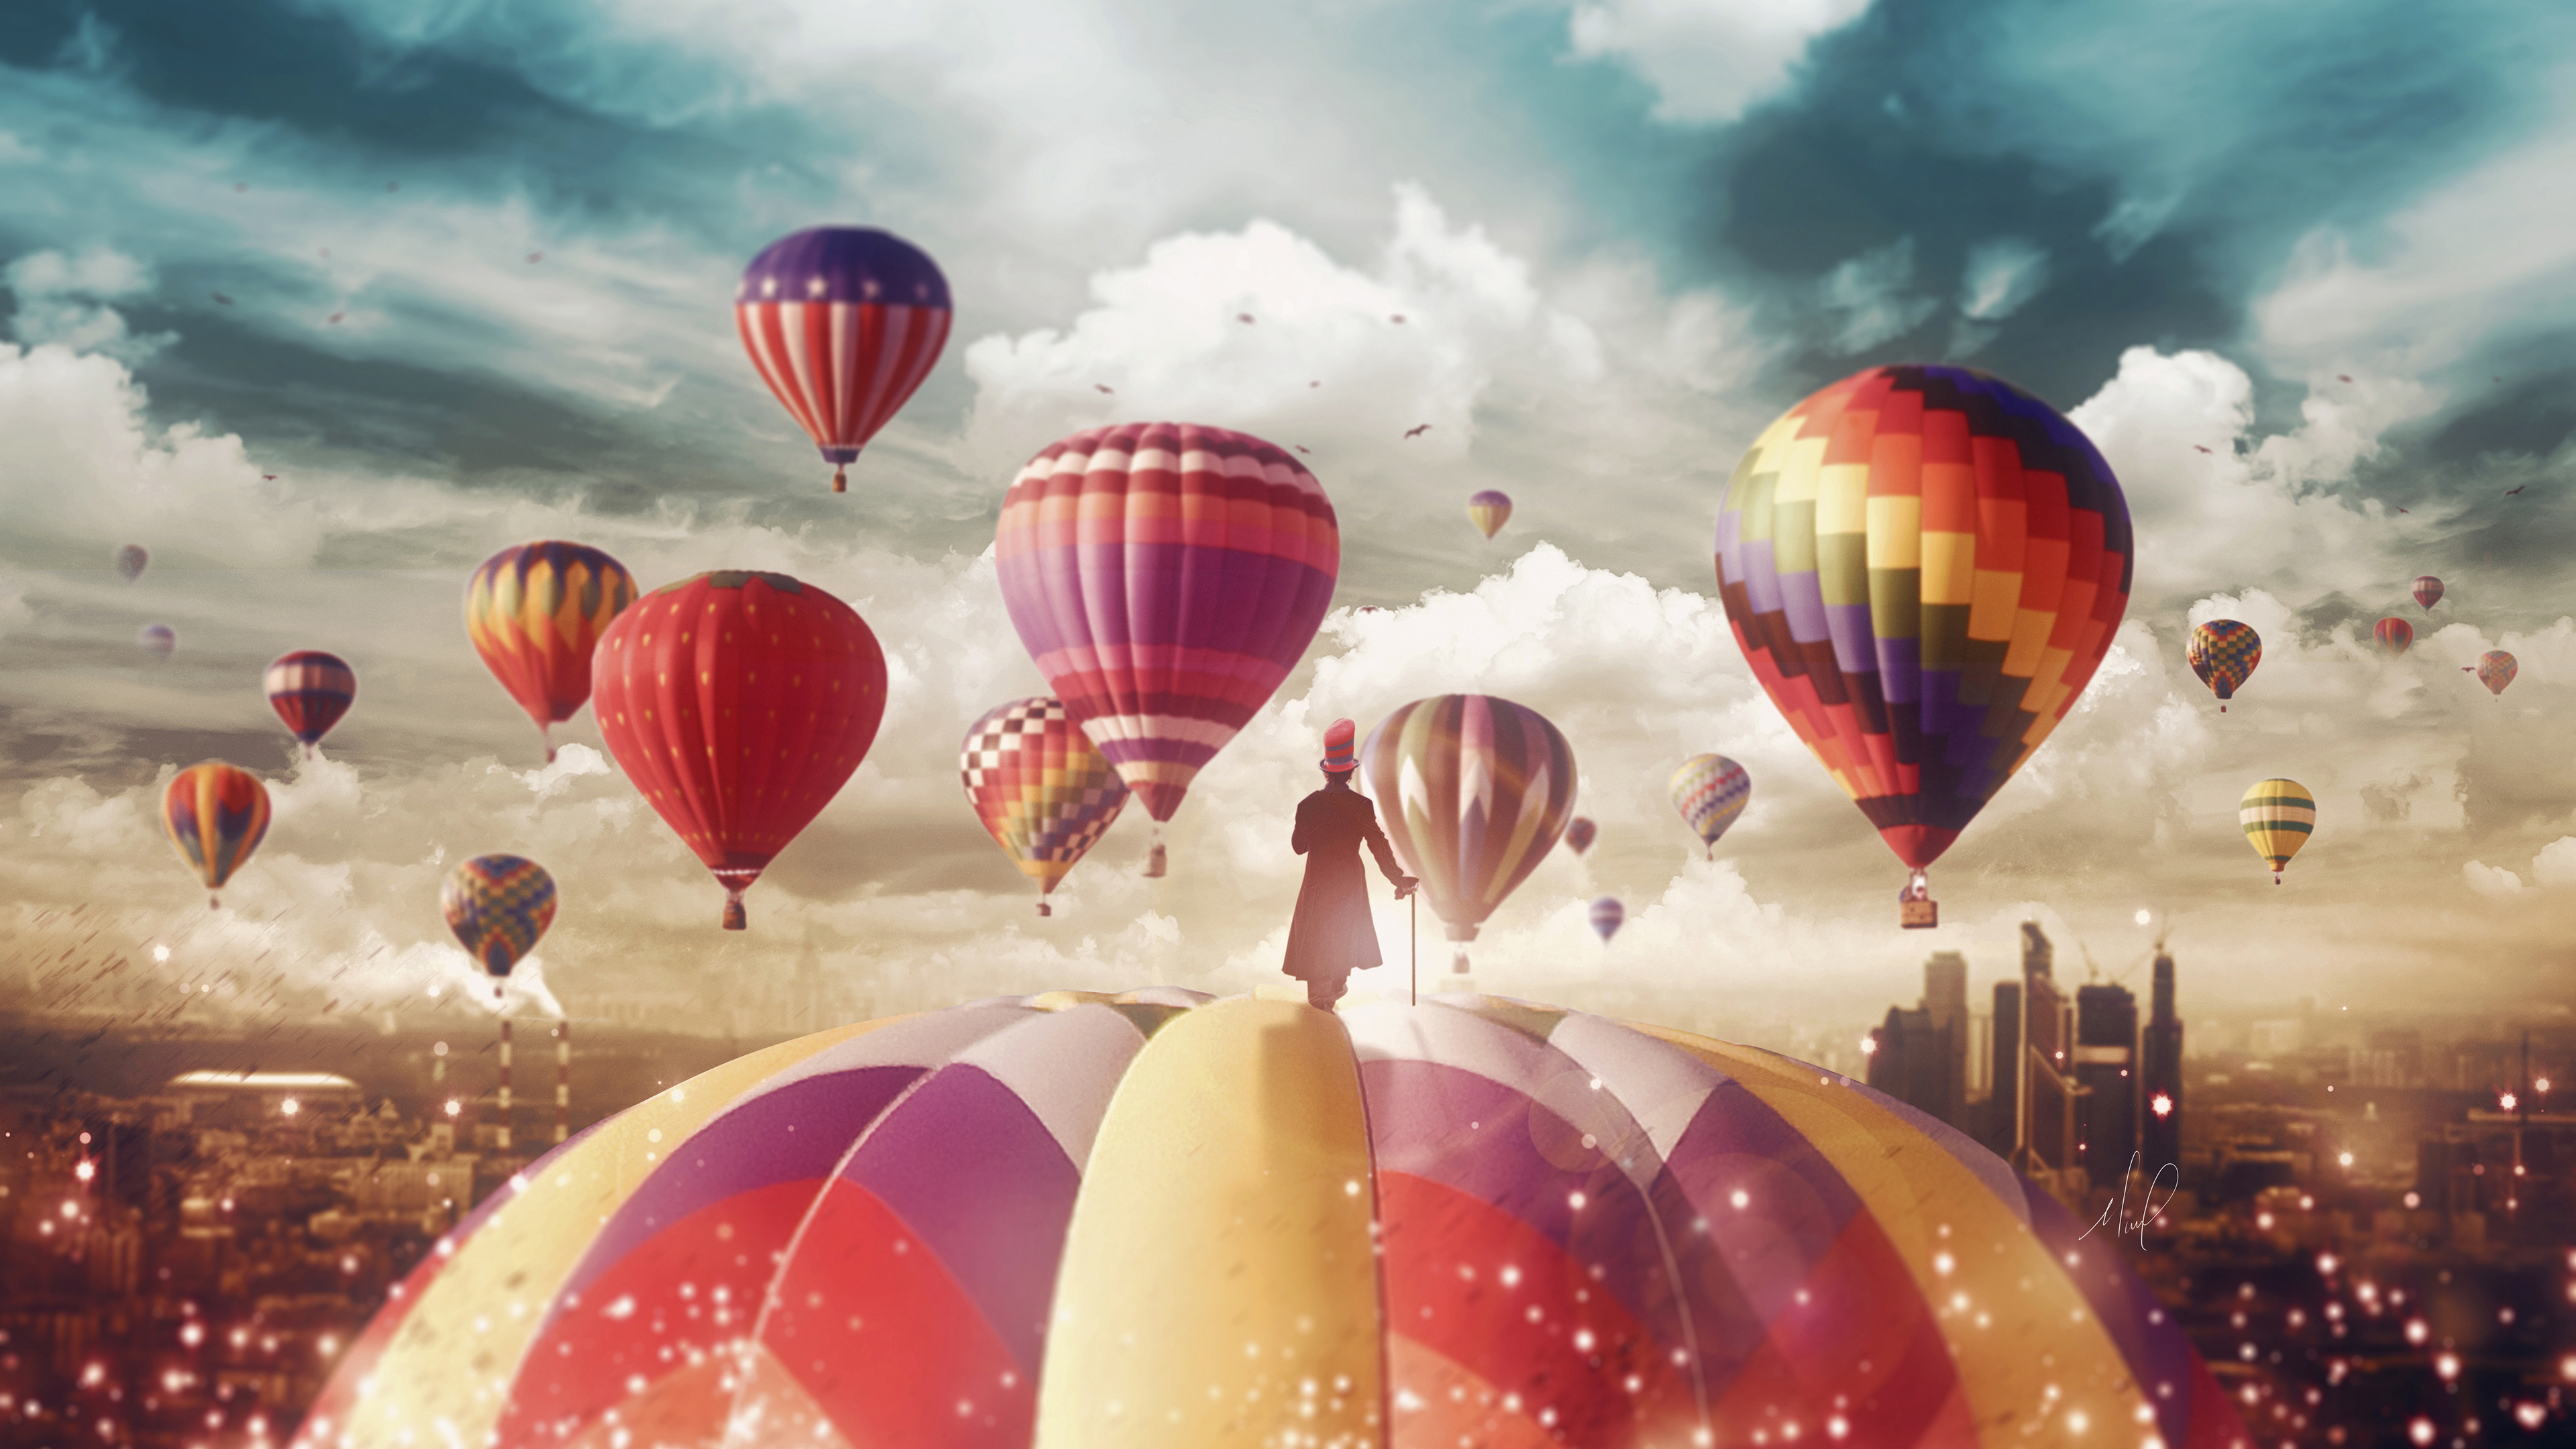 Hot Air Balloons Magician 4k Wallpapers Wallpapers Hd